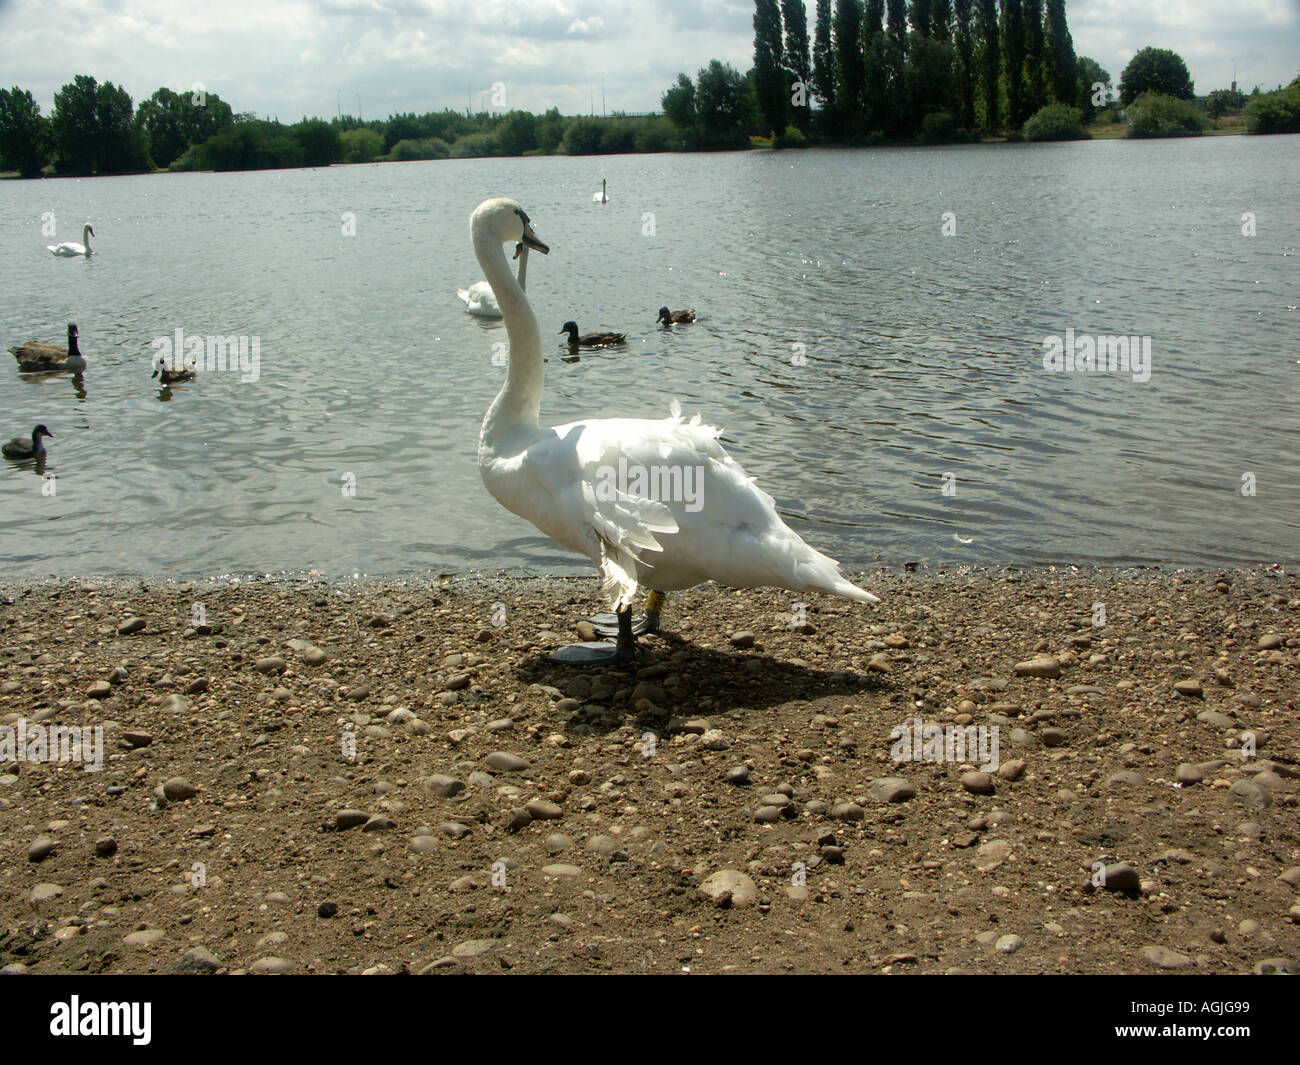 A Mute Swan with a damaged wing by a lake. Stock Photo